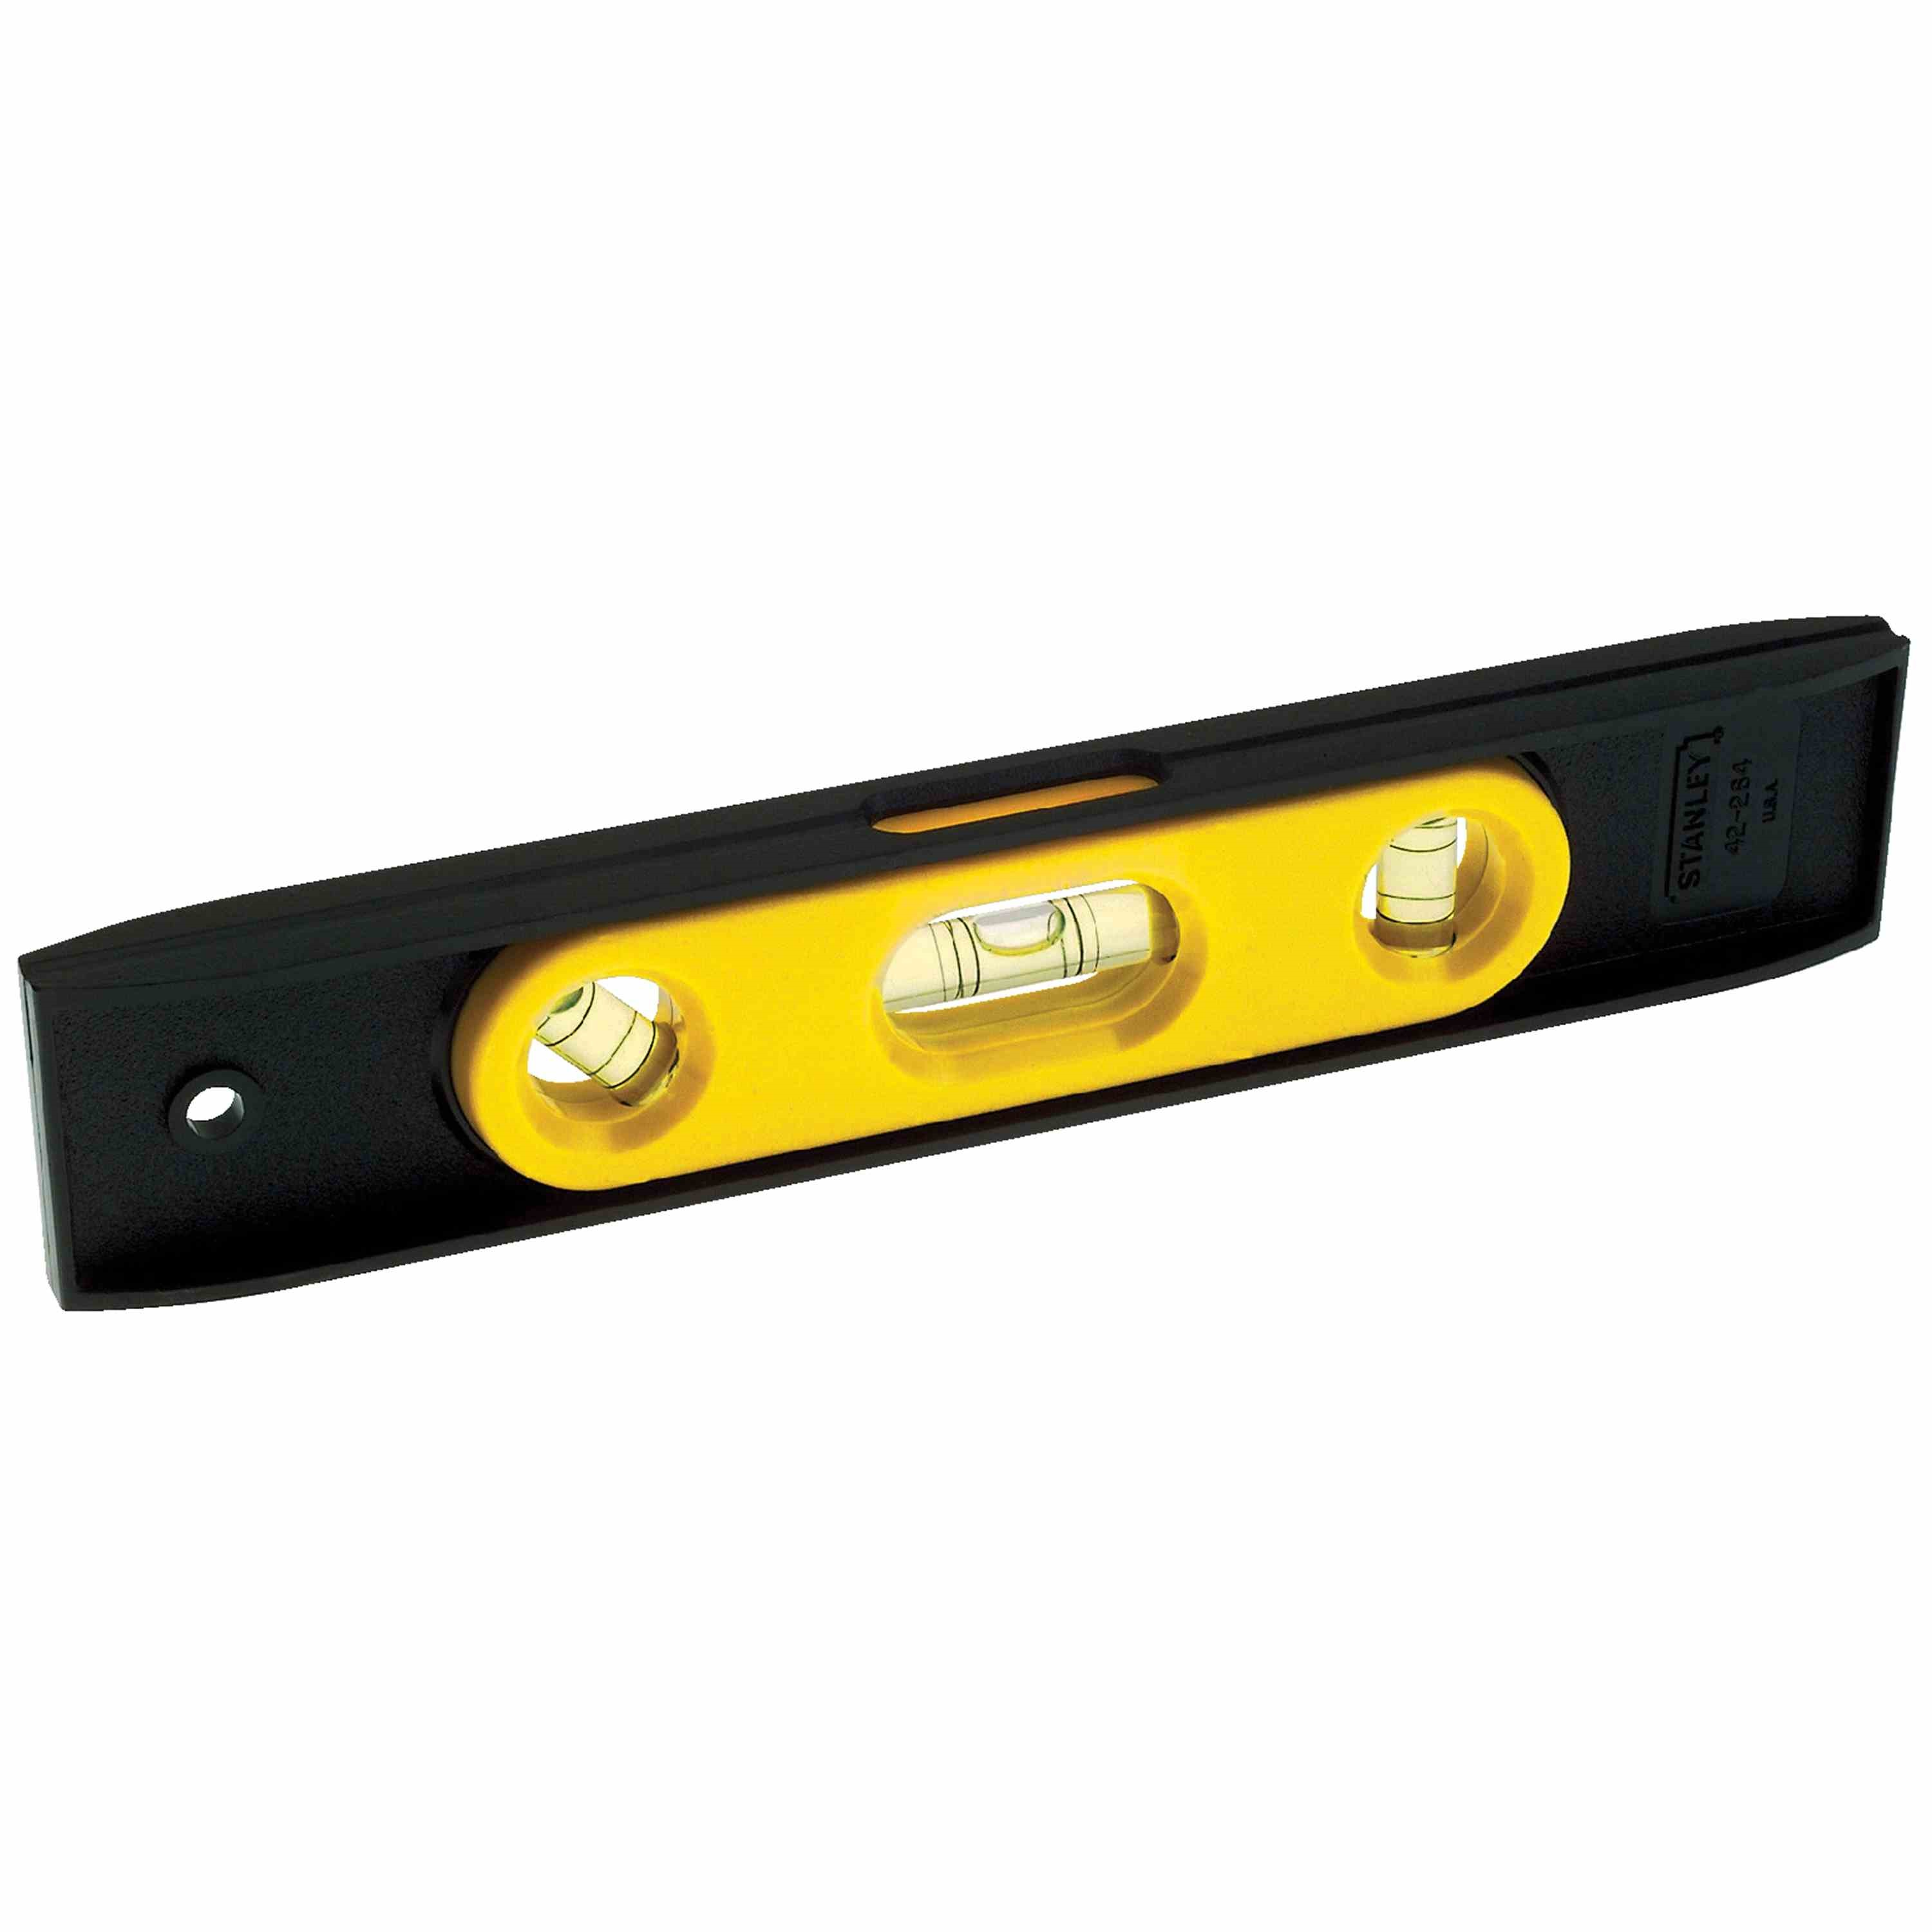 Stanley Tools - 9 in Magnetic Torpedo Level - 42-264